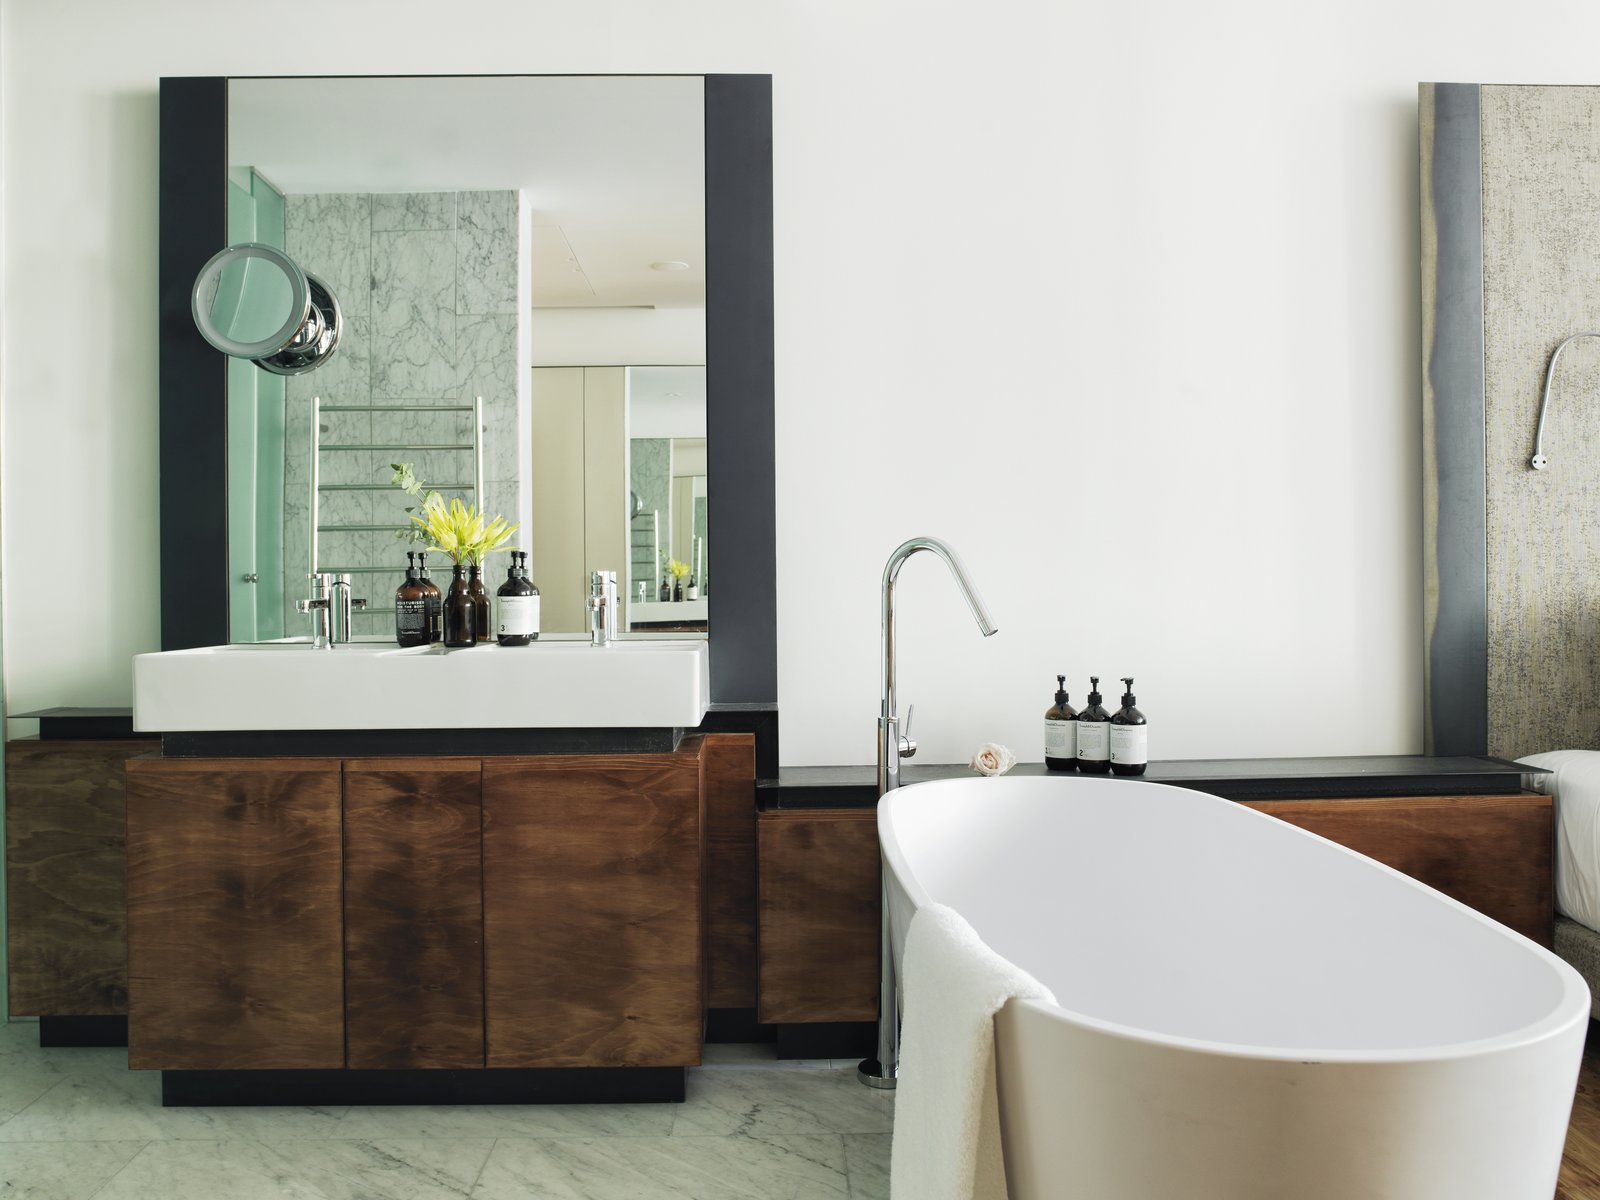 Bath Room, Marble Floor, Freestanding Tub, Vessel Sink, and Marble Wall  The Old Clare Hotel